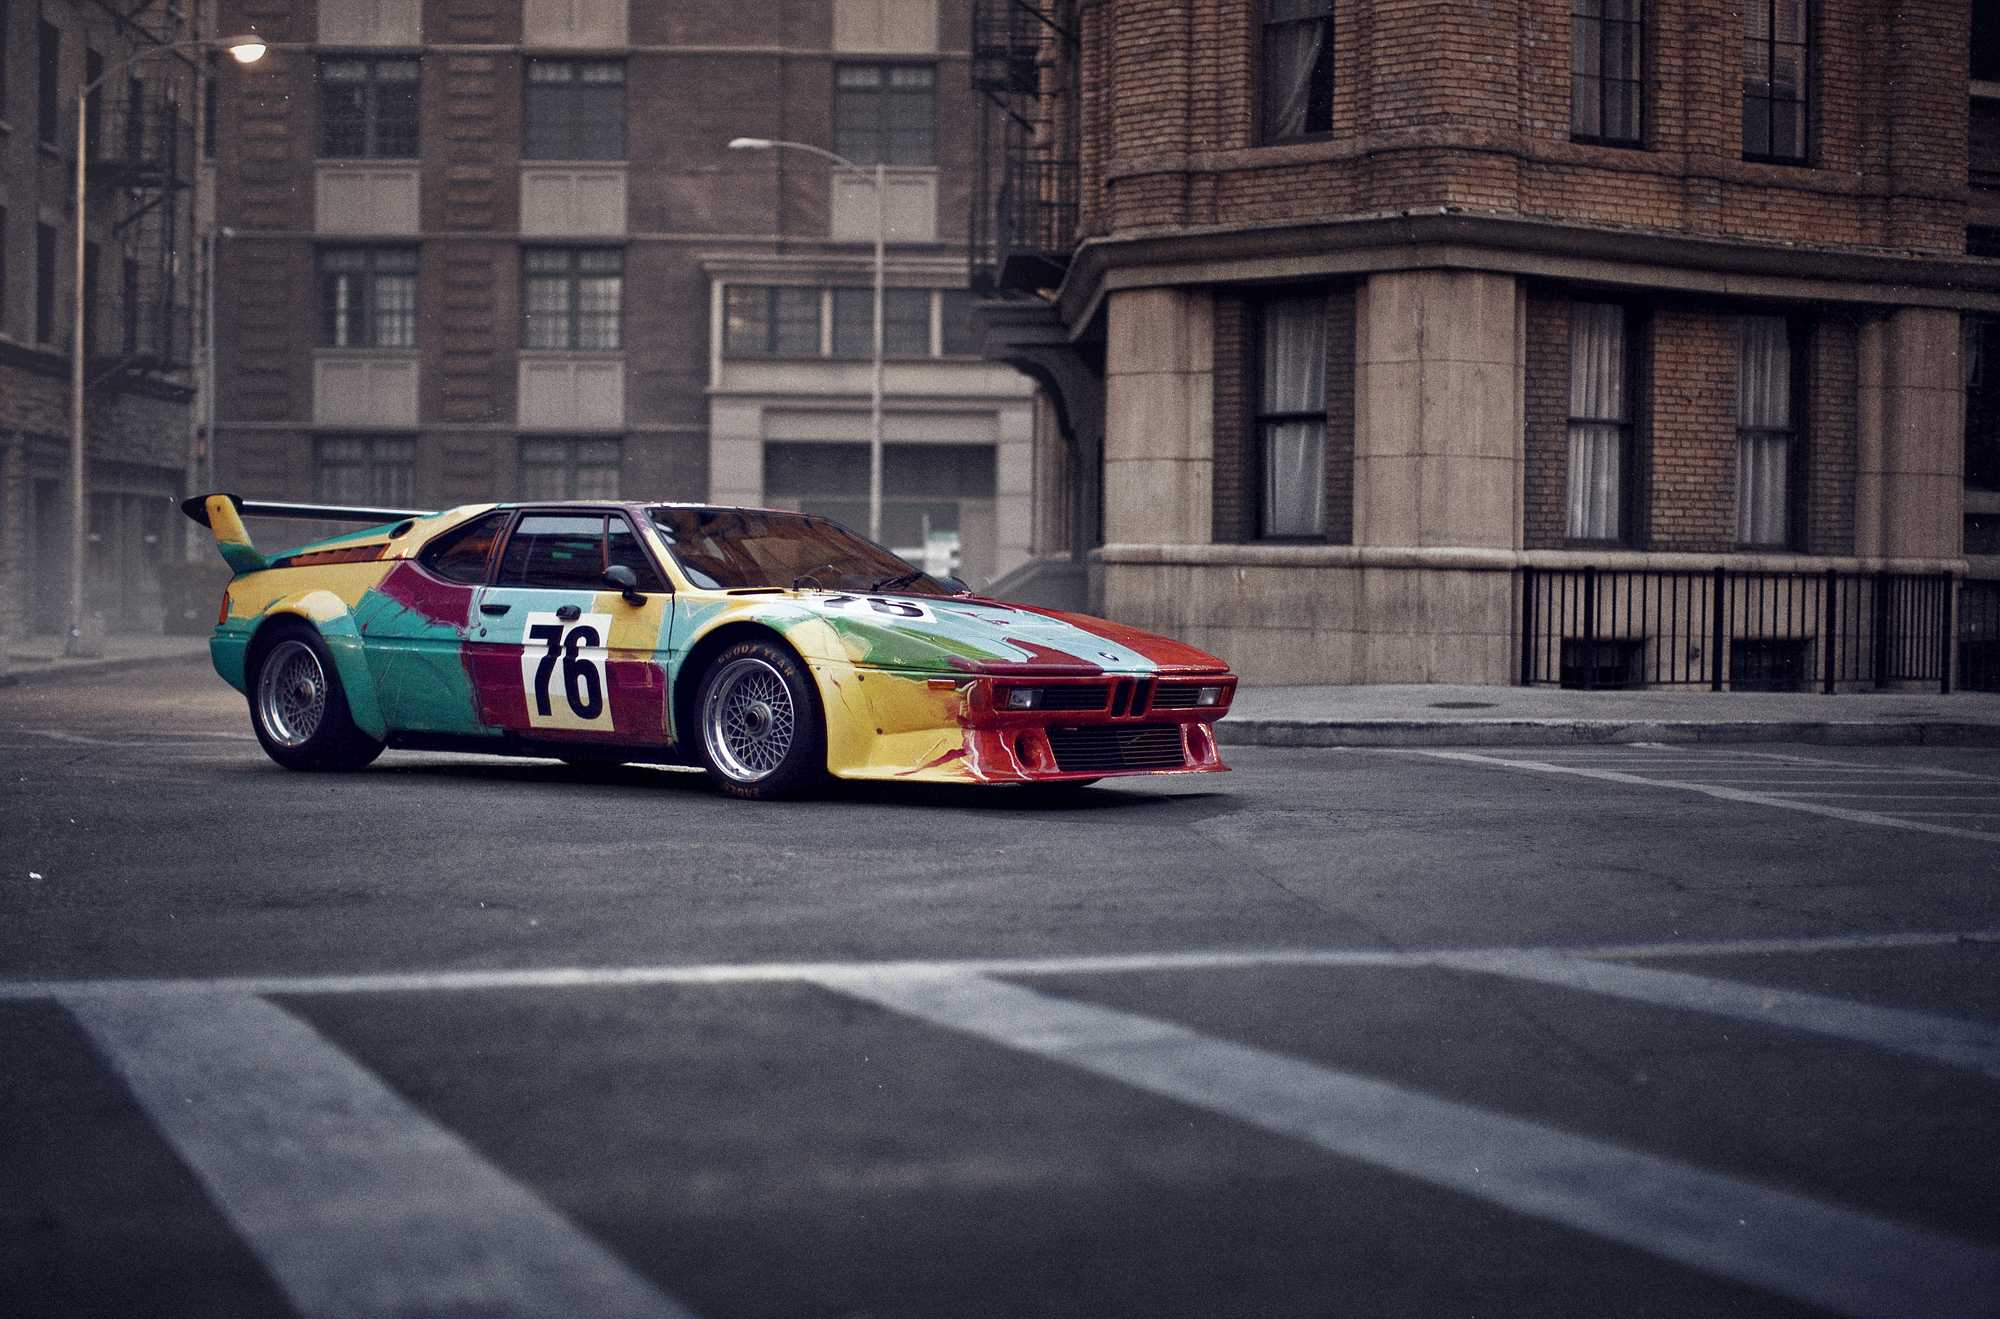 Andy Warhol BMW M1, 1979